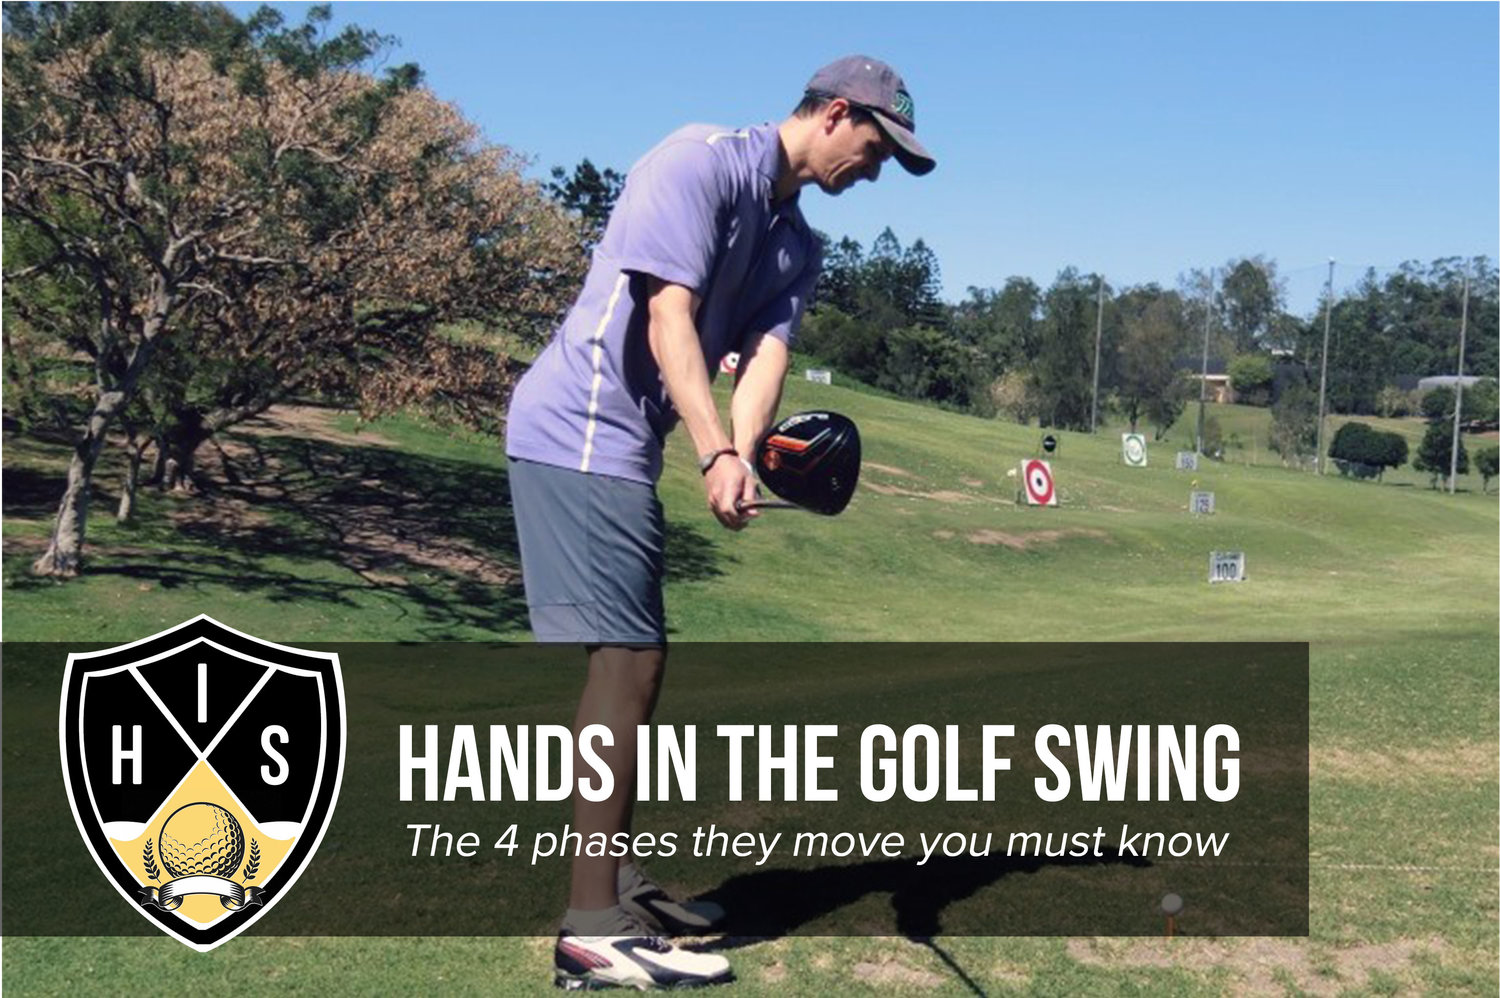 Hands In The Golf Swing: The 4 Phases They Move Every Golfer